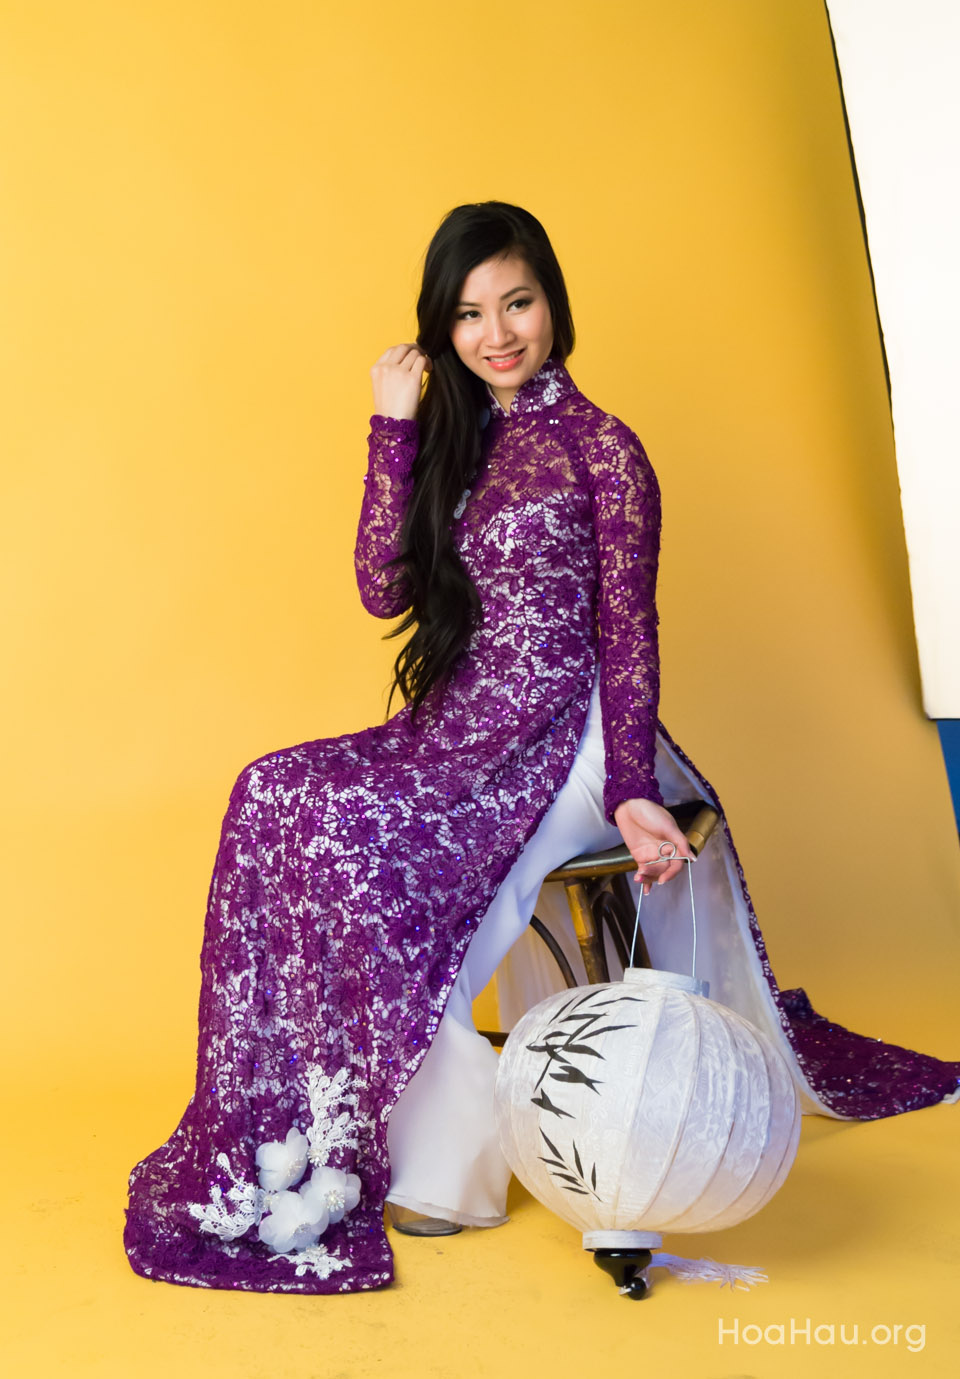 Calendar 2014 Photoshoot - Miss Vietnam of Northern California 2014 - Image 146